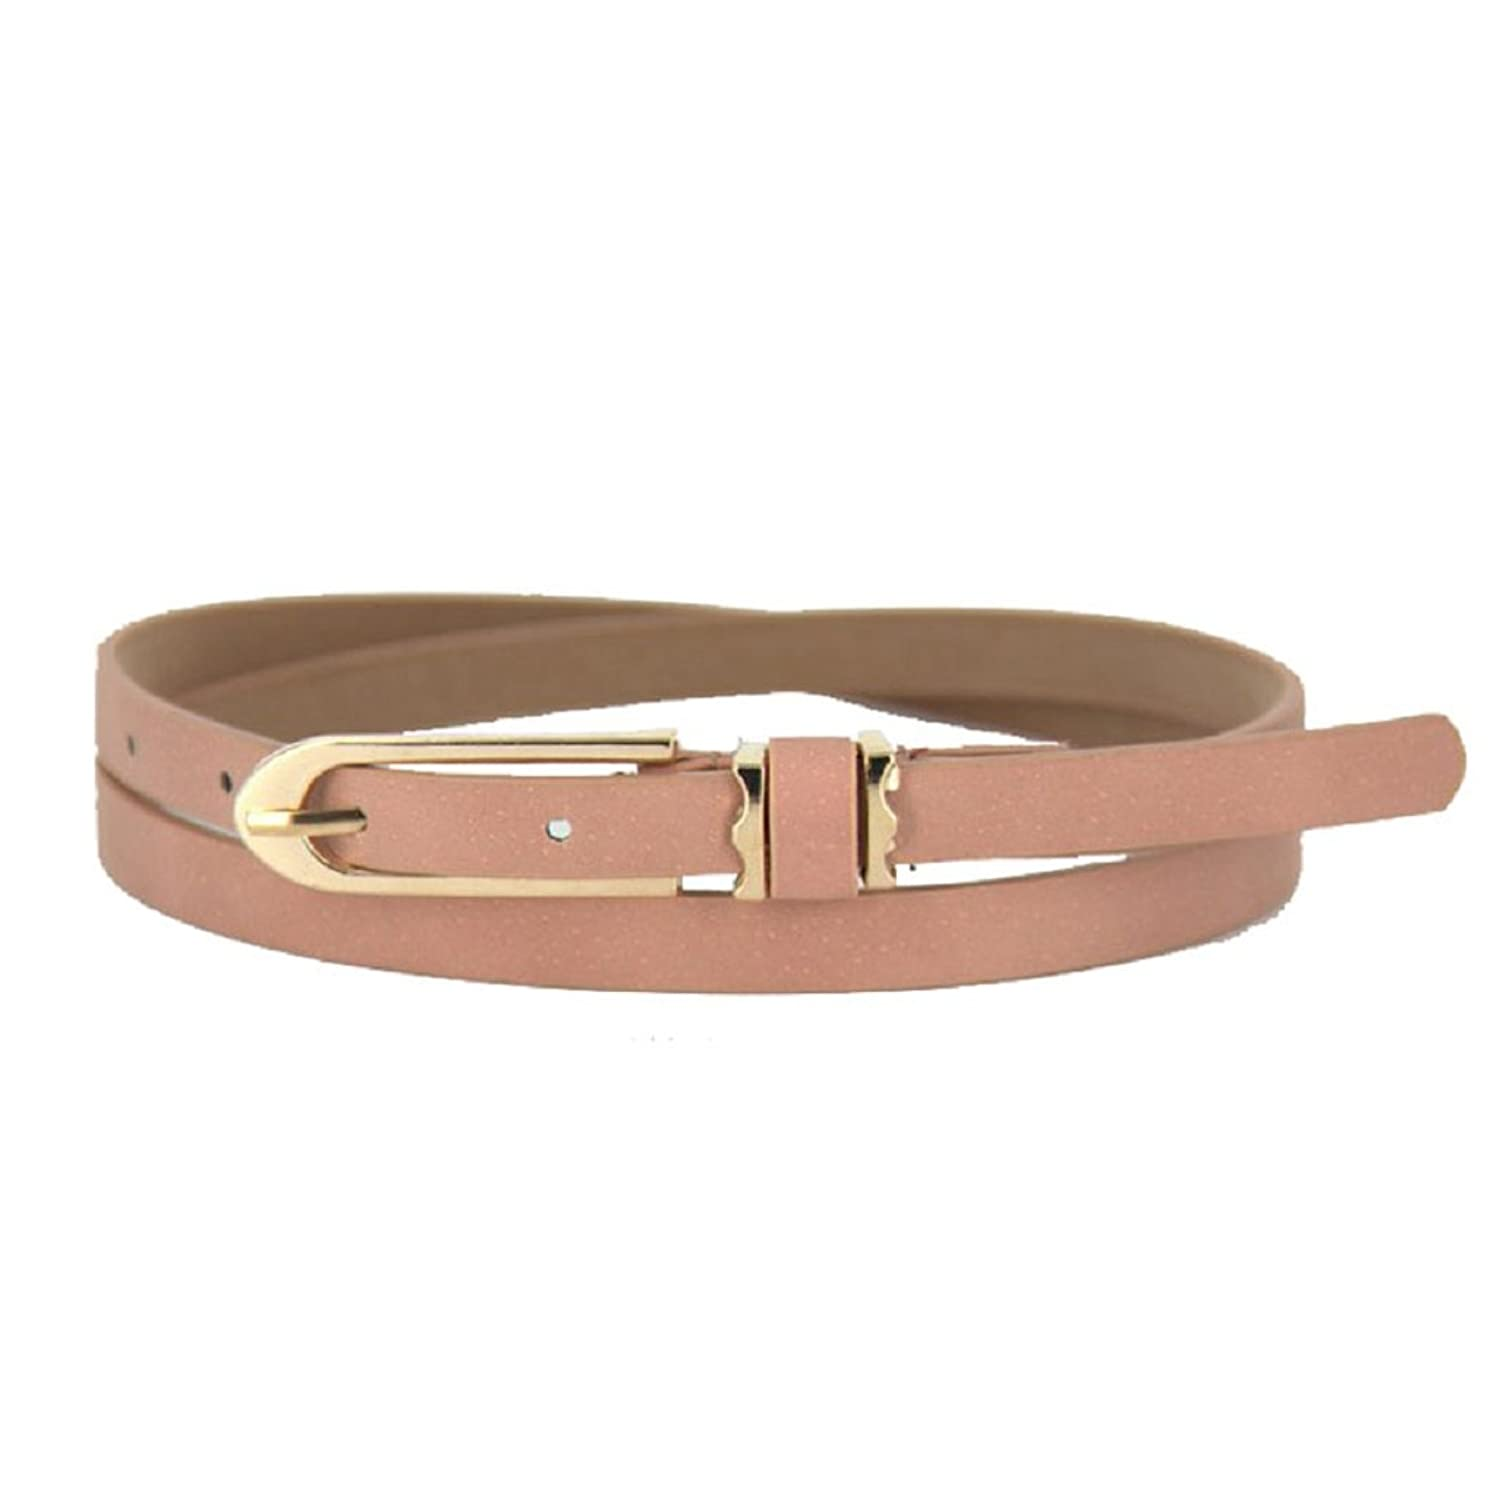 Motop Women's Candy Color Thin Skinny PU Leather Buckle Belt